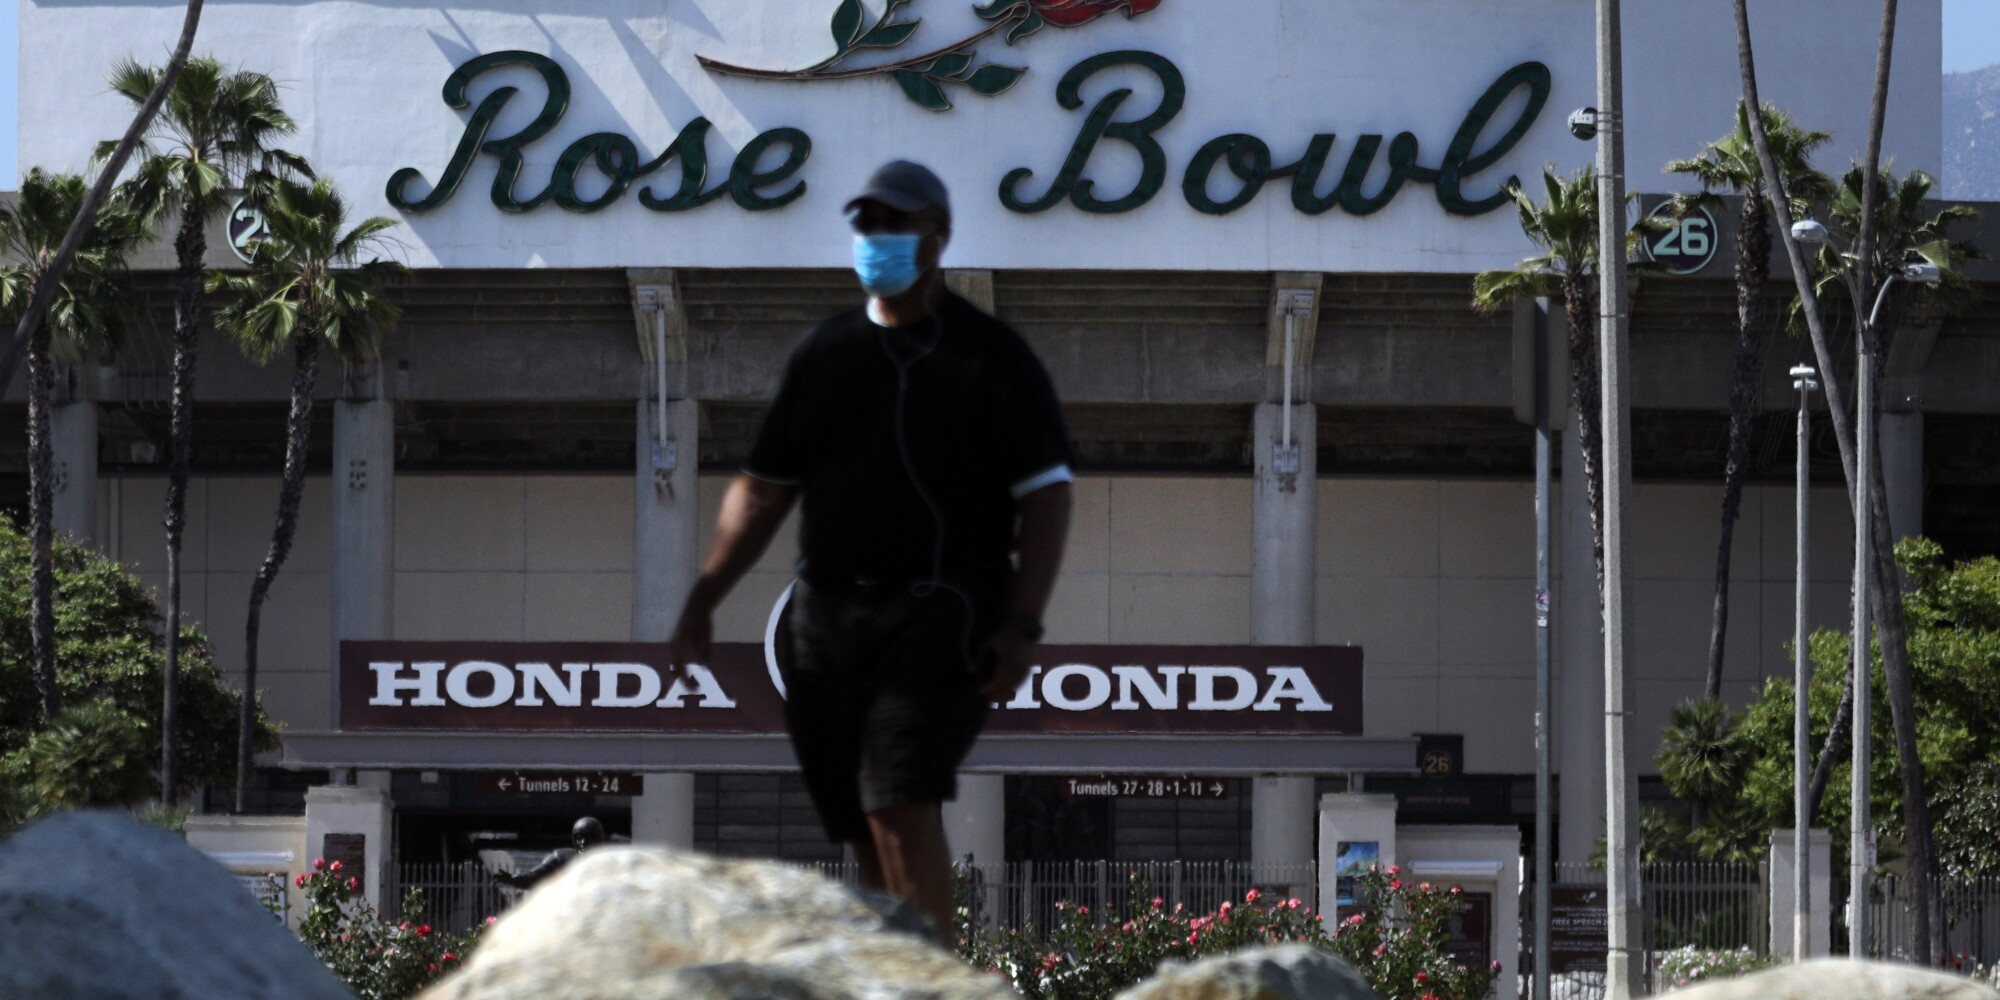 The Pasadena City Council opened the Rose Bowl Loop on Wednesday allowing visitors to enjoy the popular 3-mile trail around the Rose Bowl stadium.